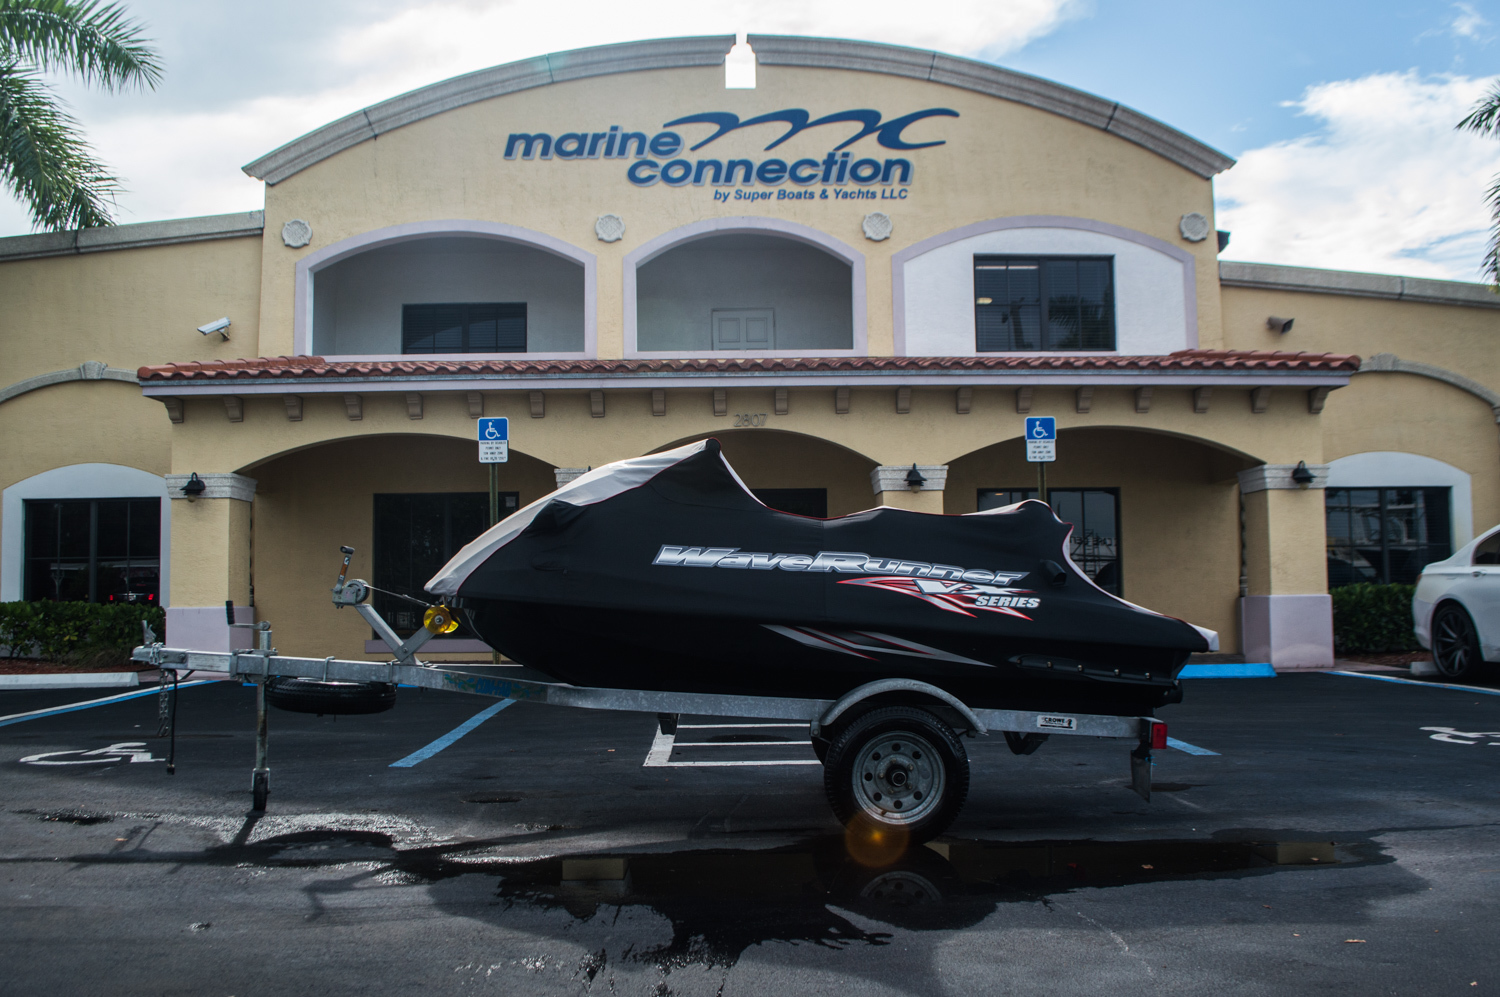 Thumbnail 15 for Used 2007 Yamaha VX Cruiser boat for sale in West Palm Beach, FL